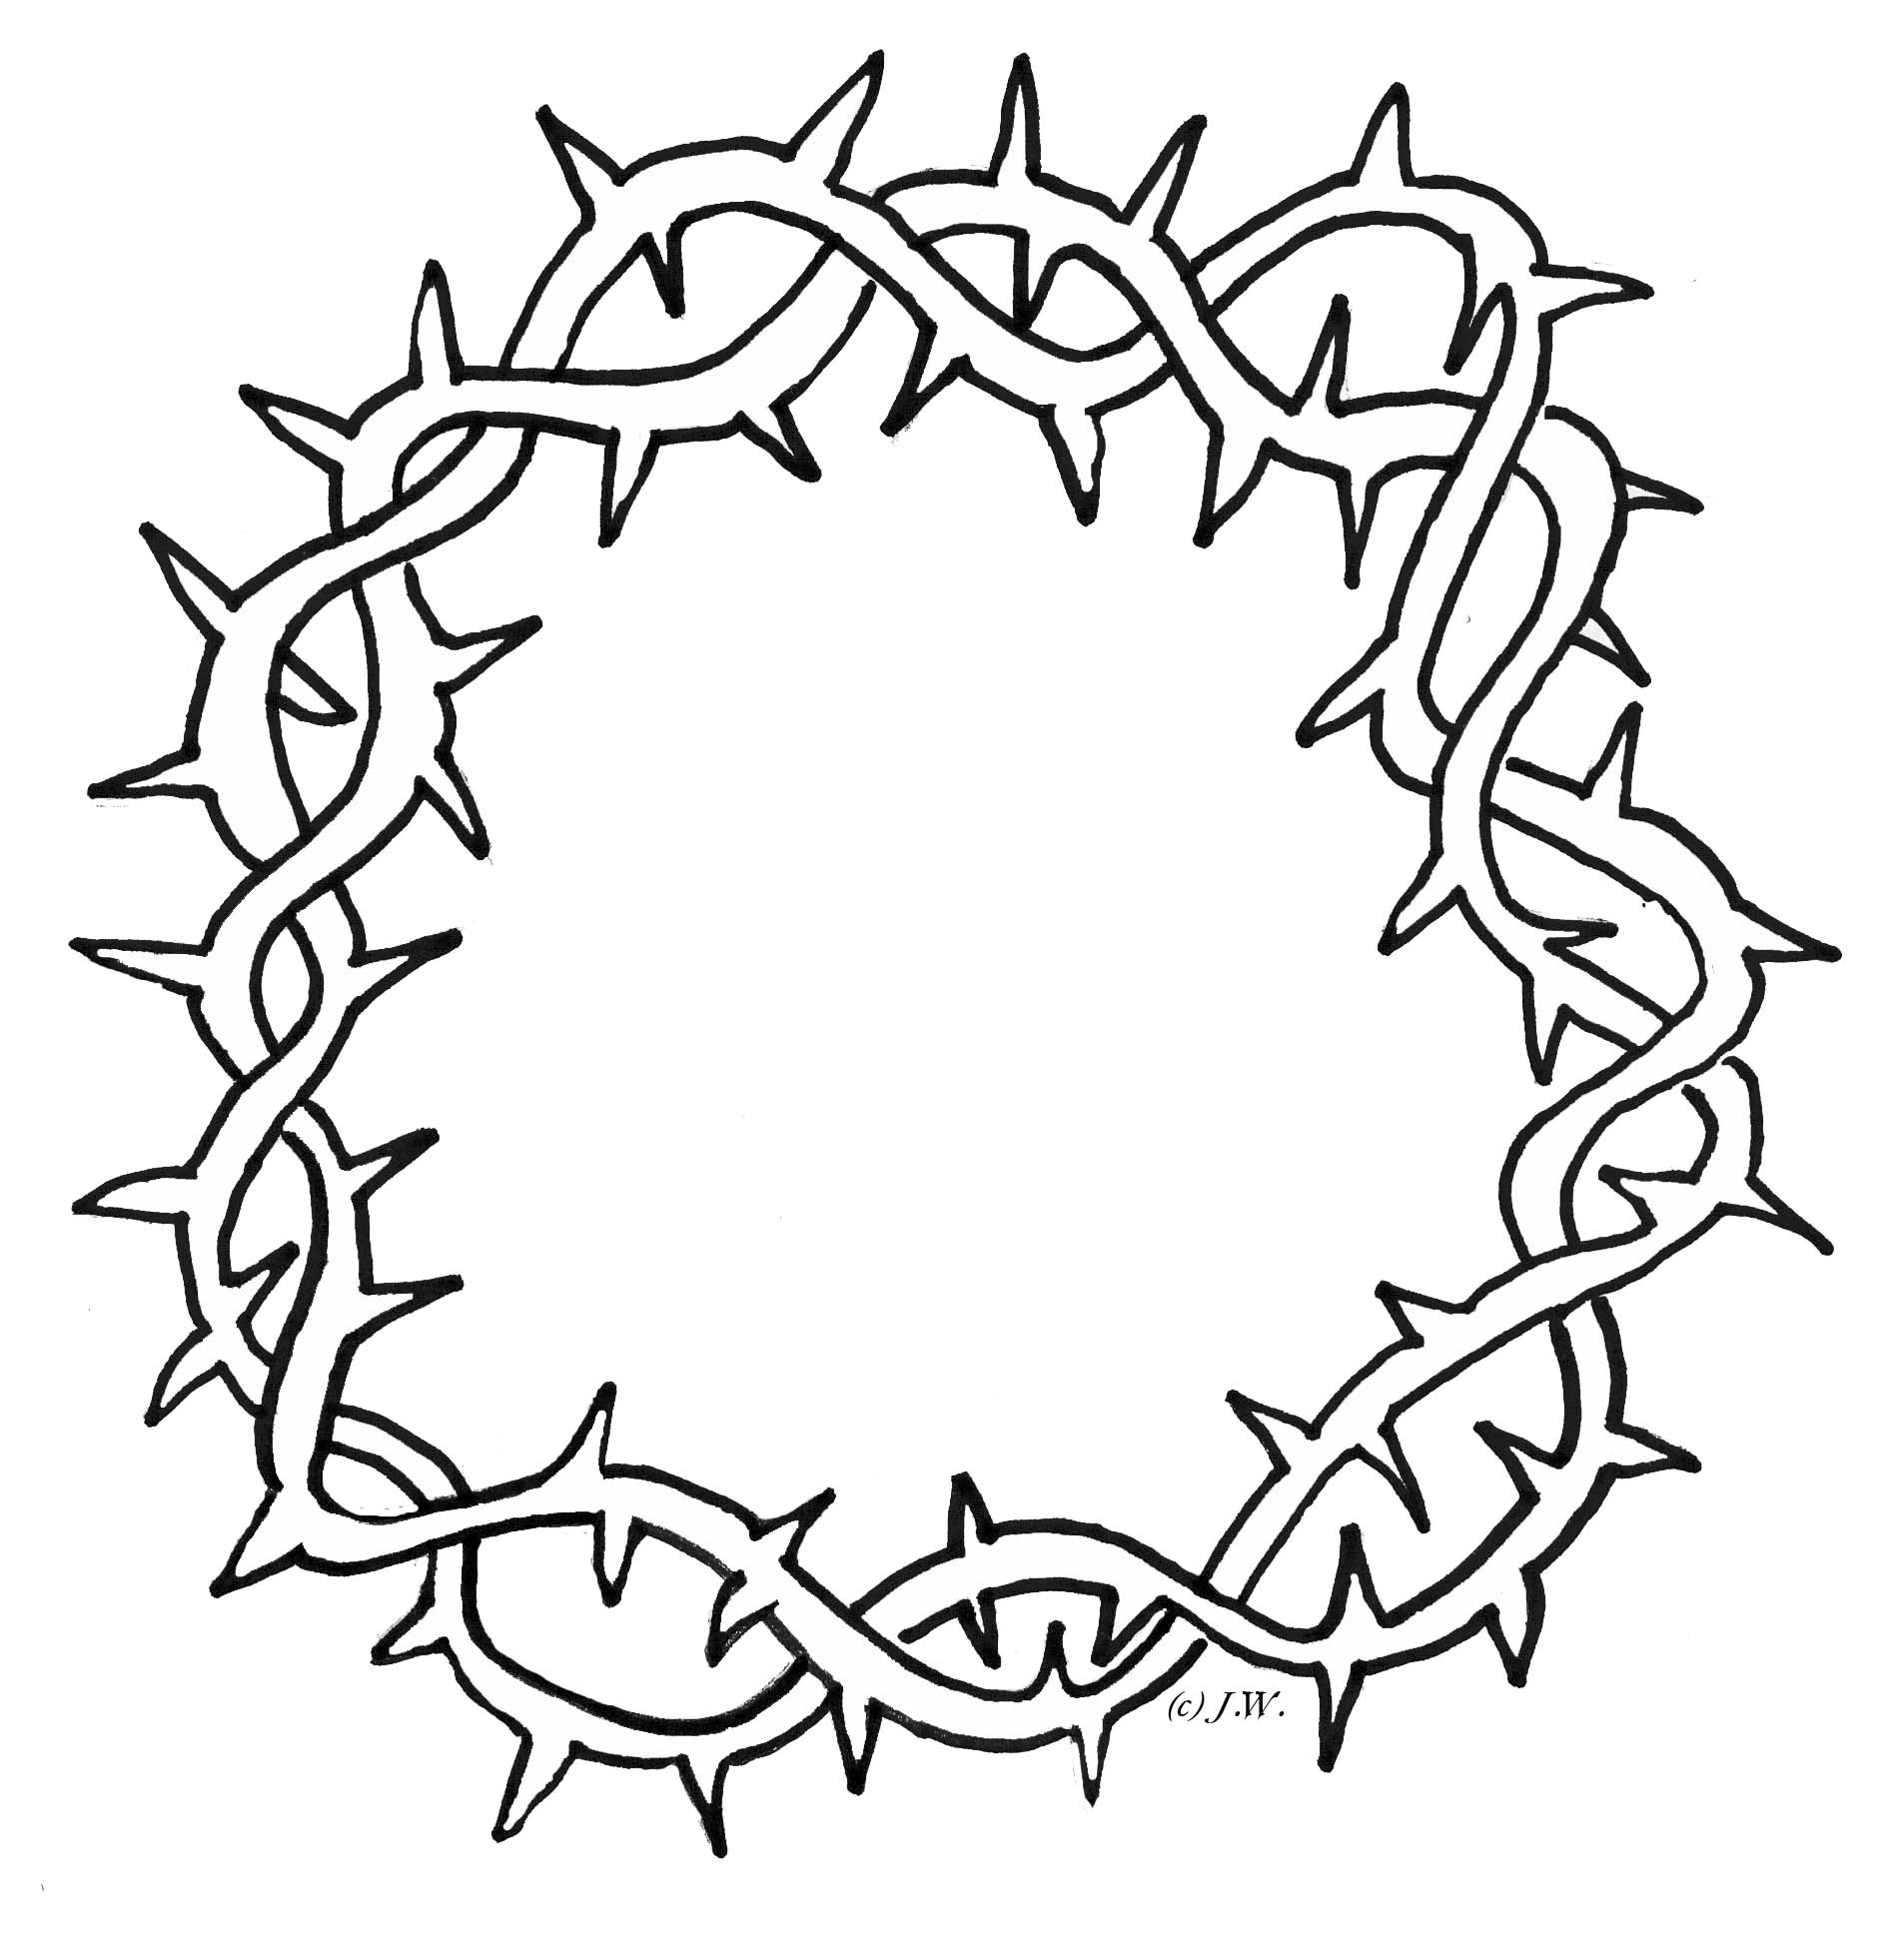 Thorns clipart #3, Download drawings